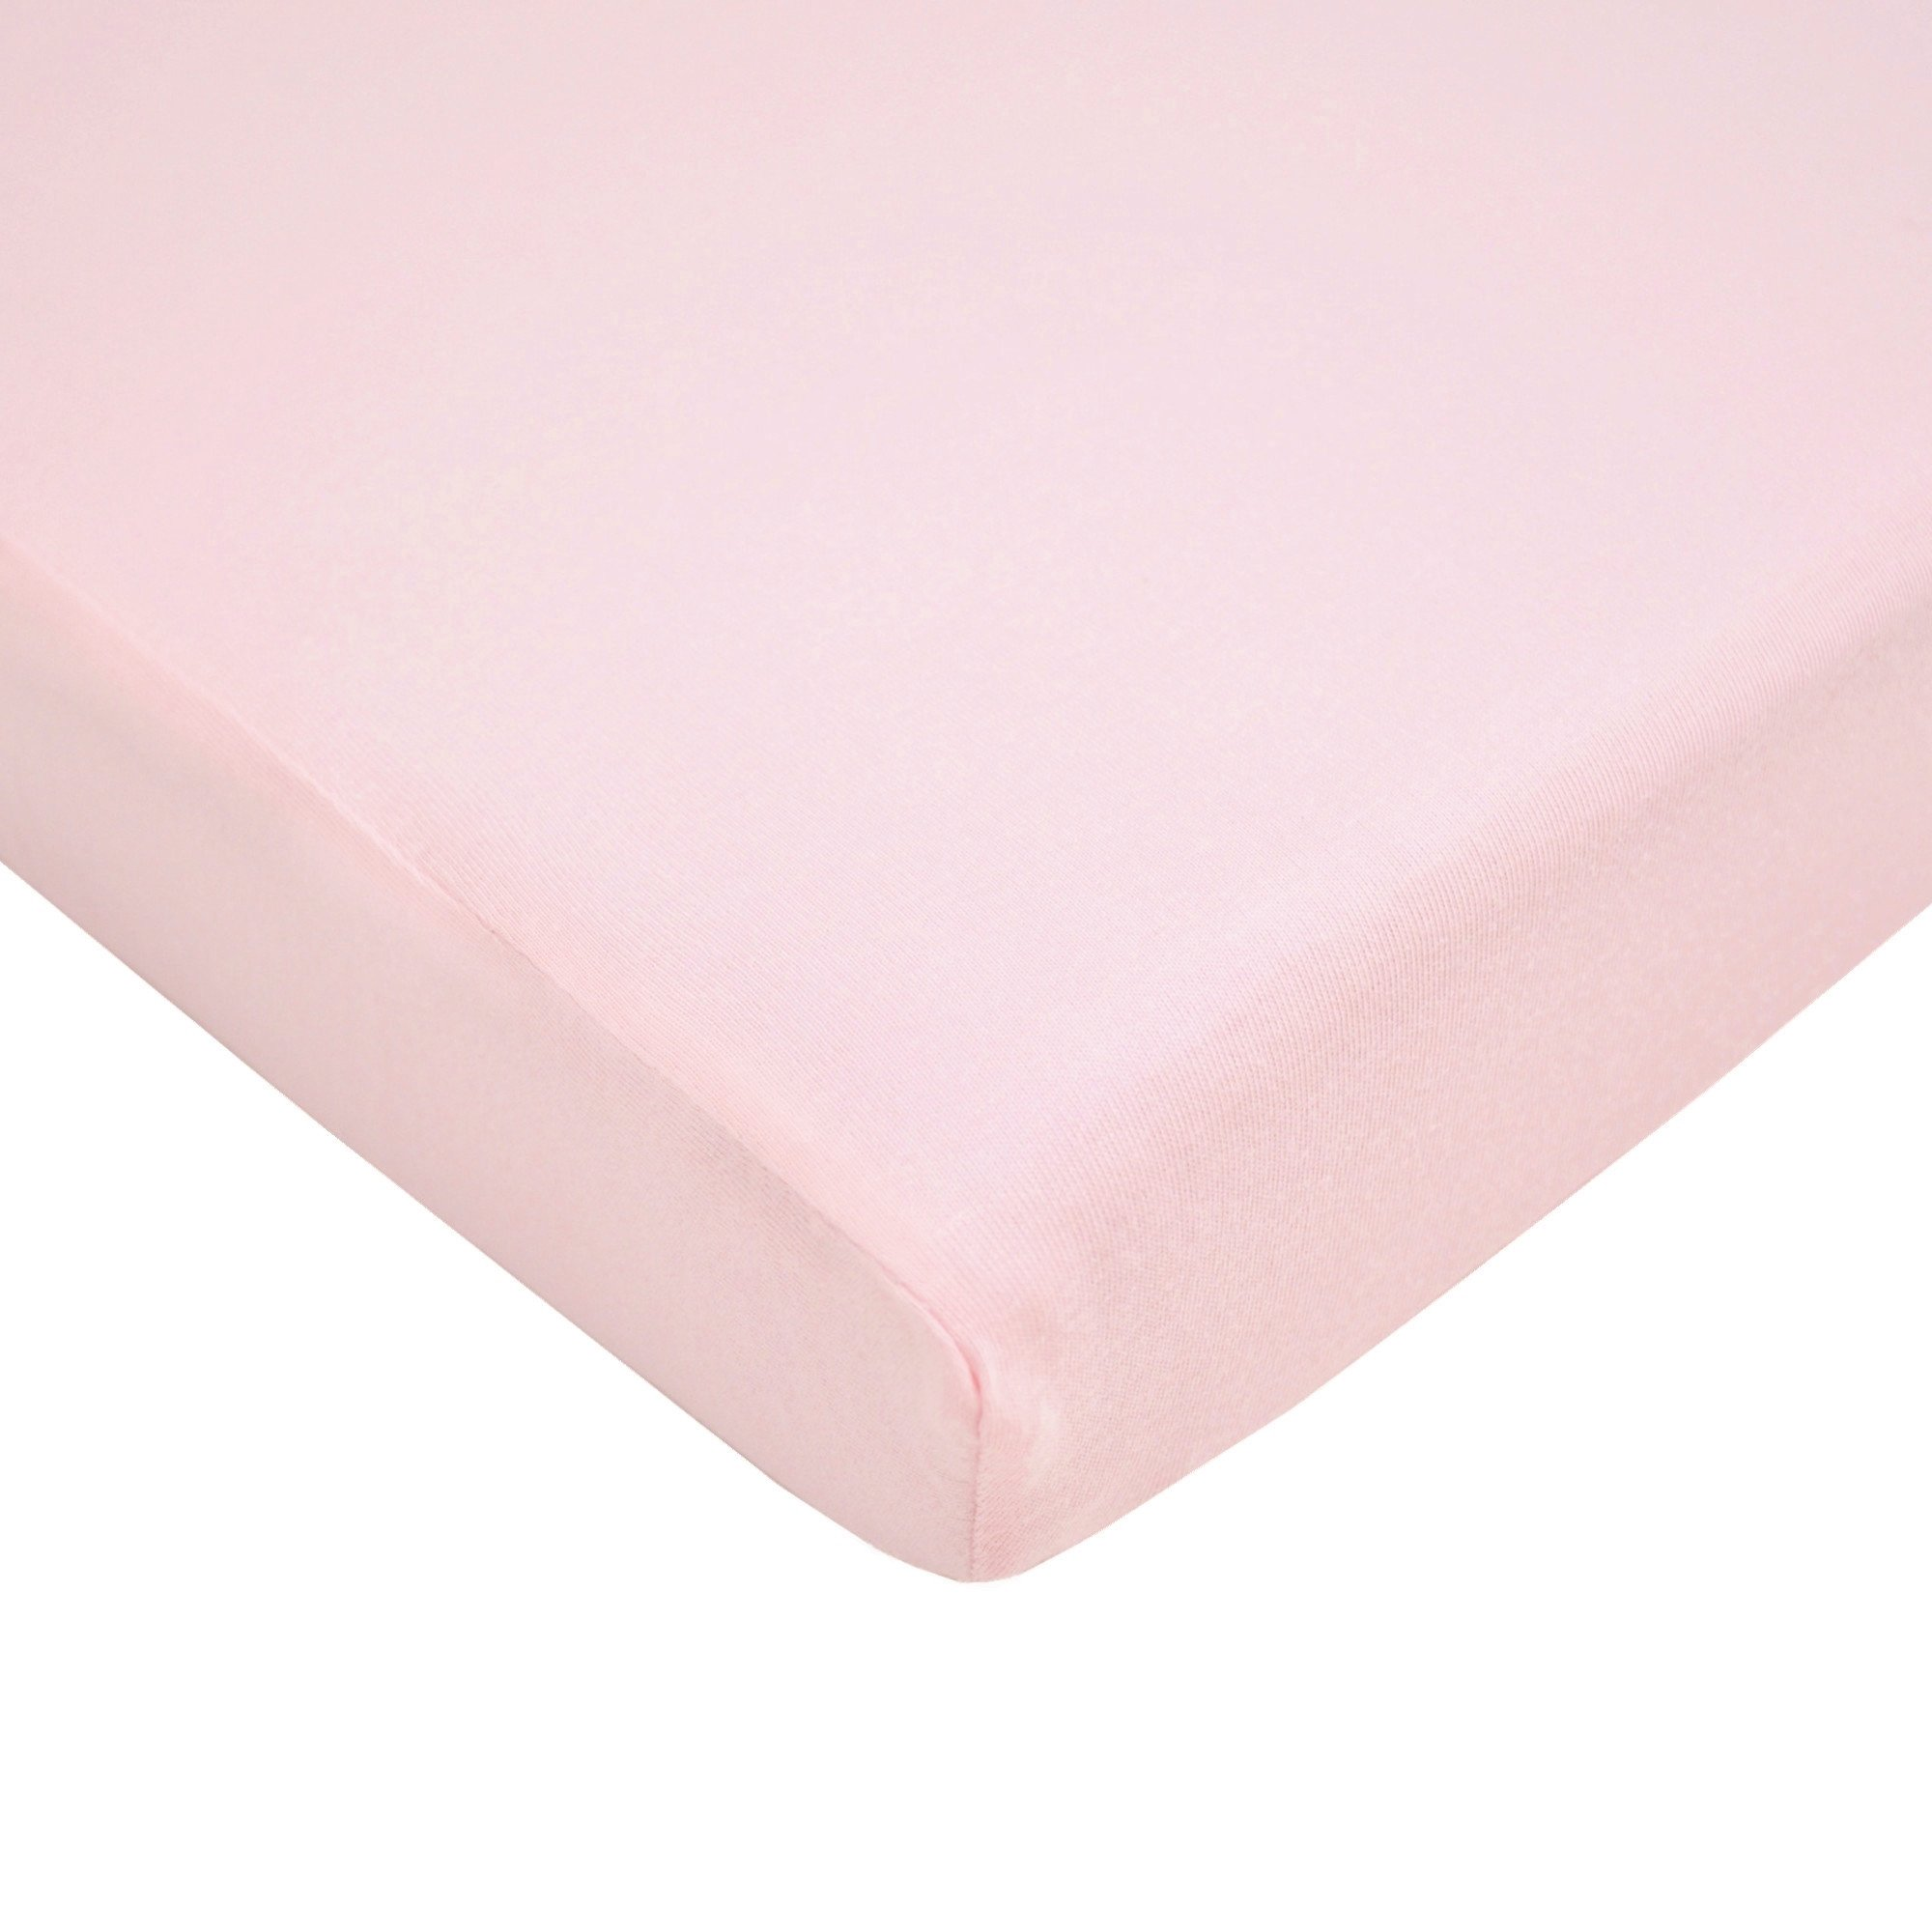 TL Care 100% Cotton Value Jersey Knit Fitted Portable/Mini-Crib Sheet, Pink